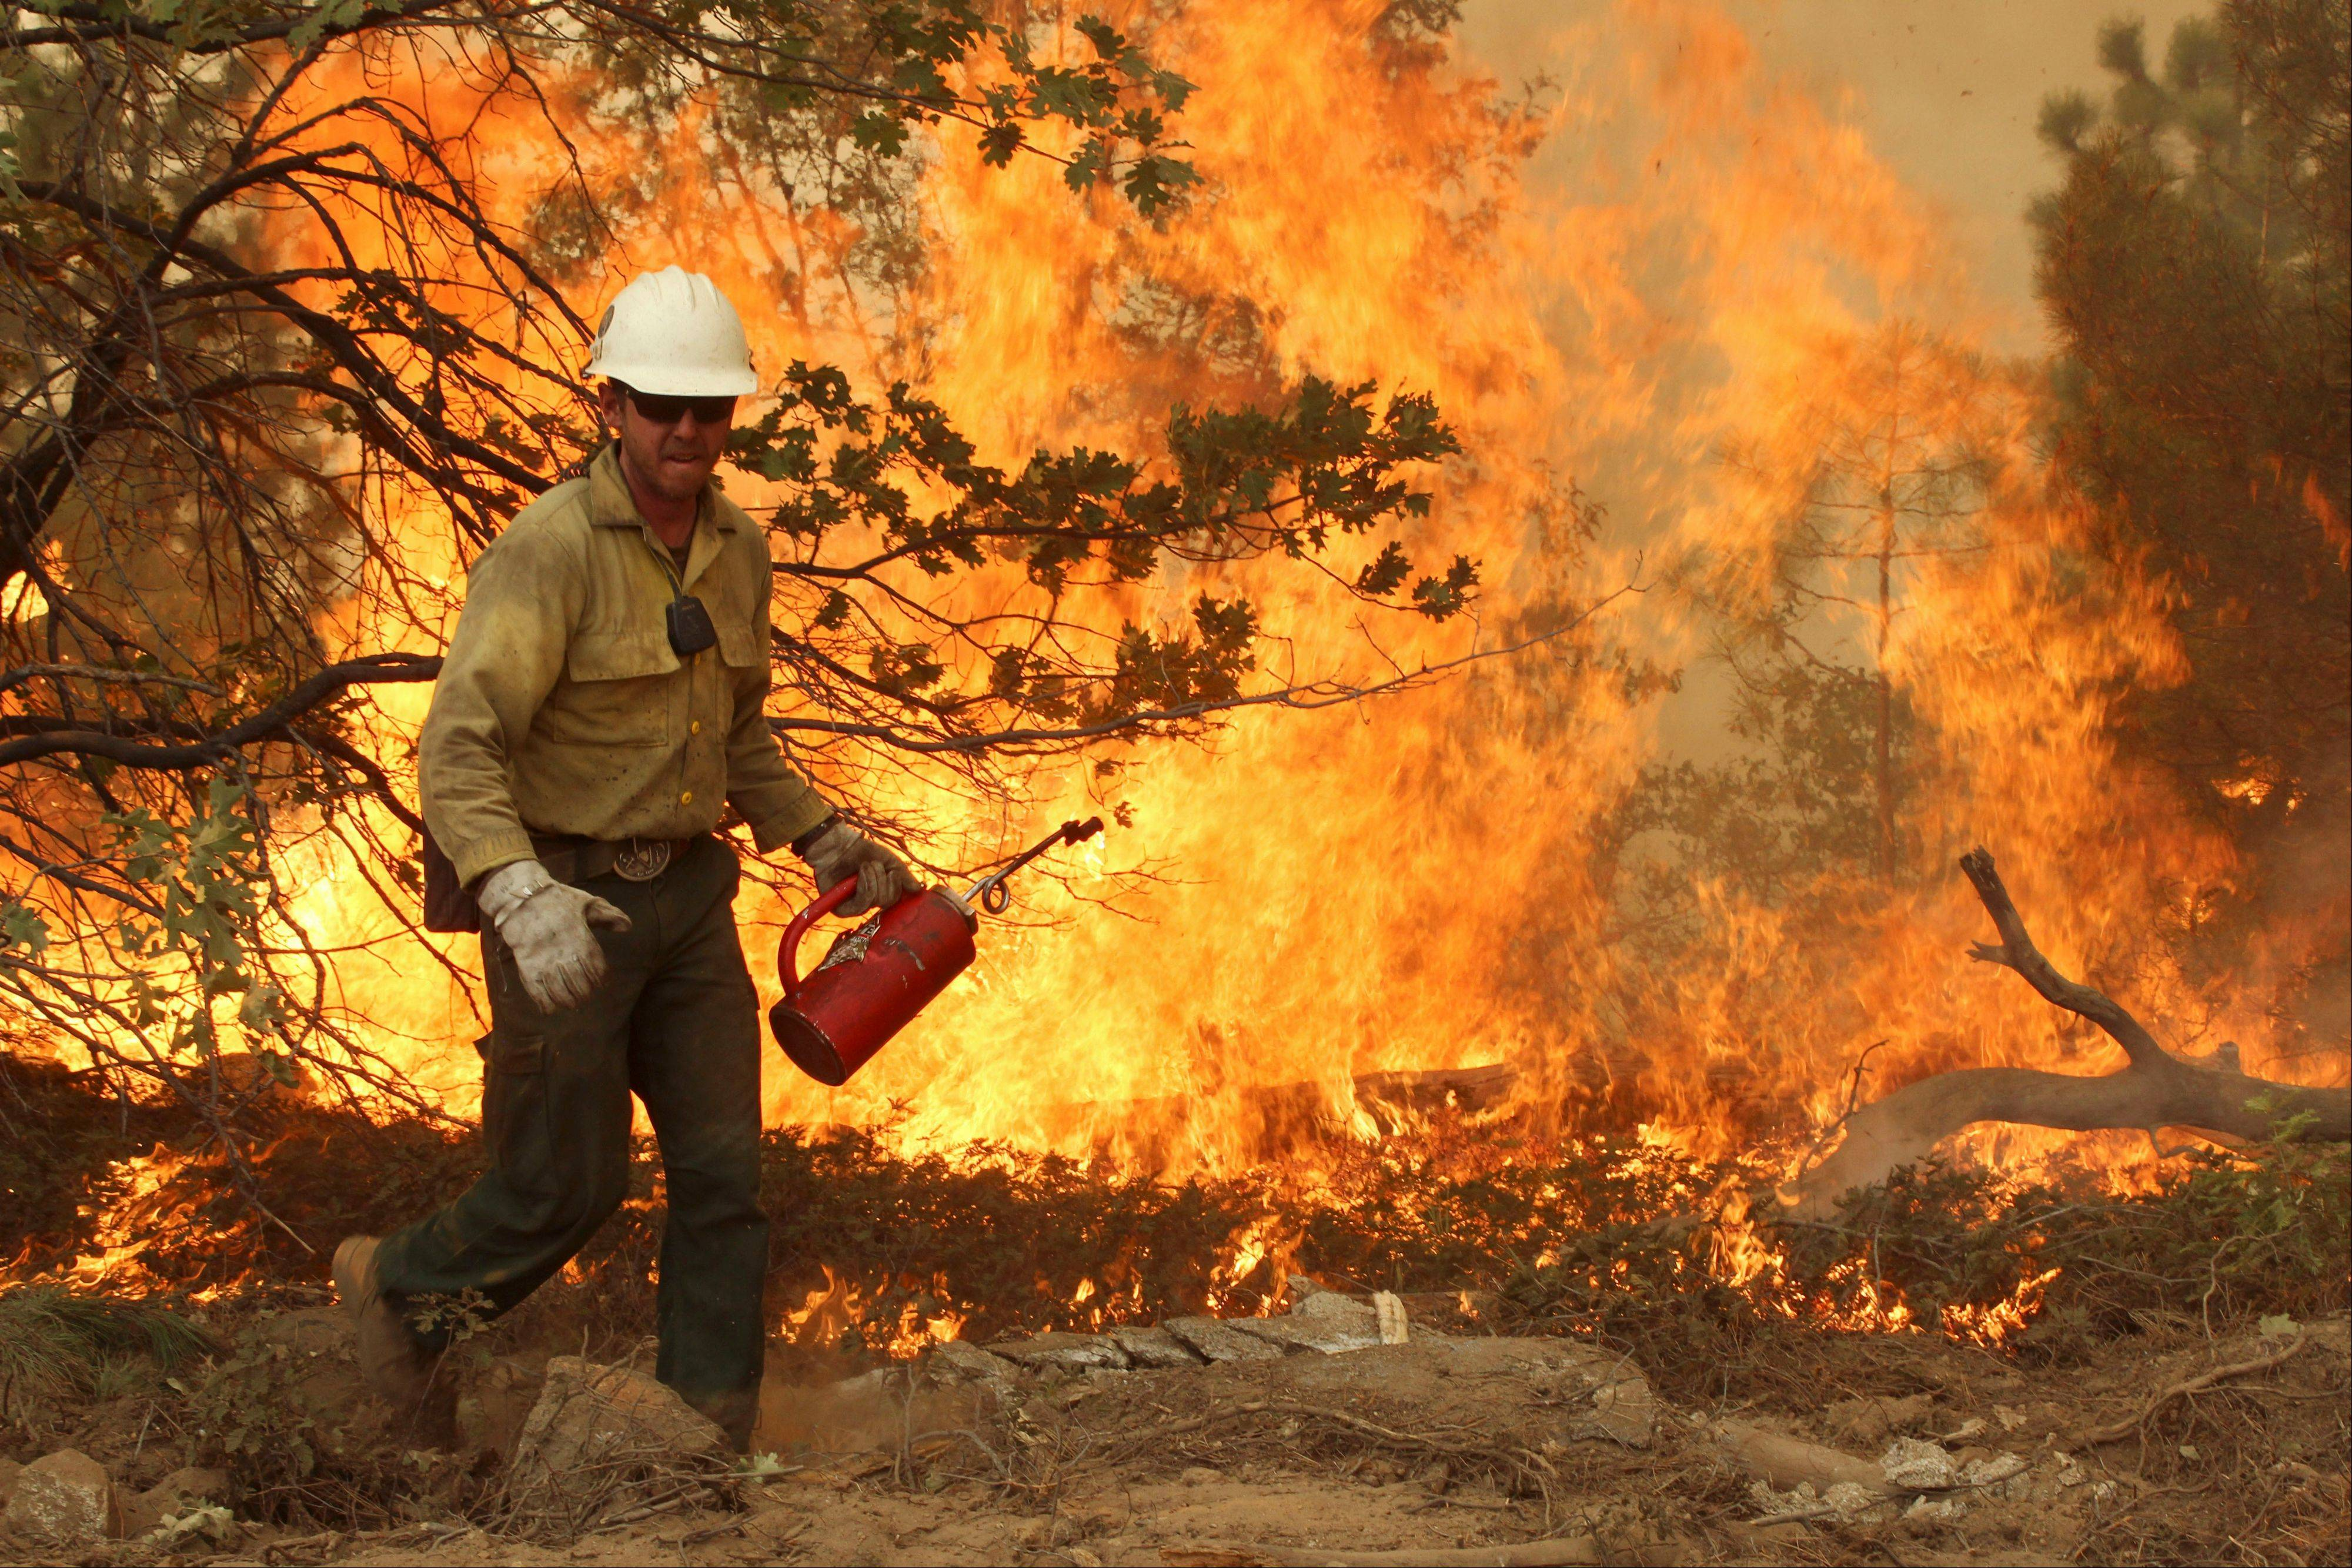 Associated Press/U.S. Forest ServiceA member of the BLM Silver State Hotshot crew uses a drip torch to set back fires on the southern flank of the Rim Fire in California.